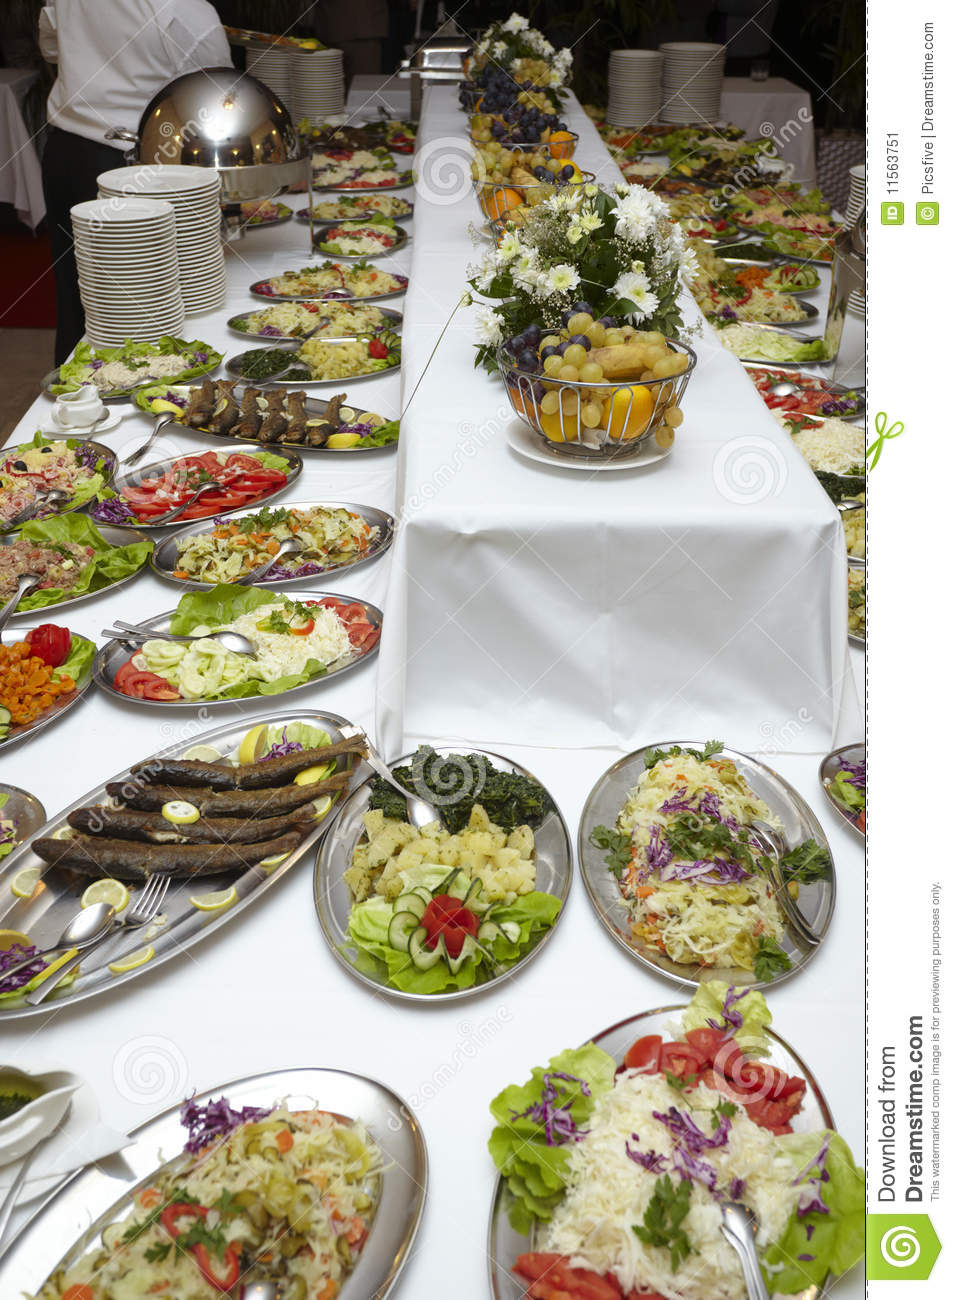 Catering food restaurant cuisine stock image image 11563751 for Cuisine restaurant